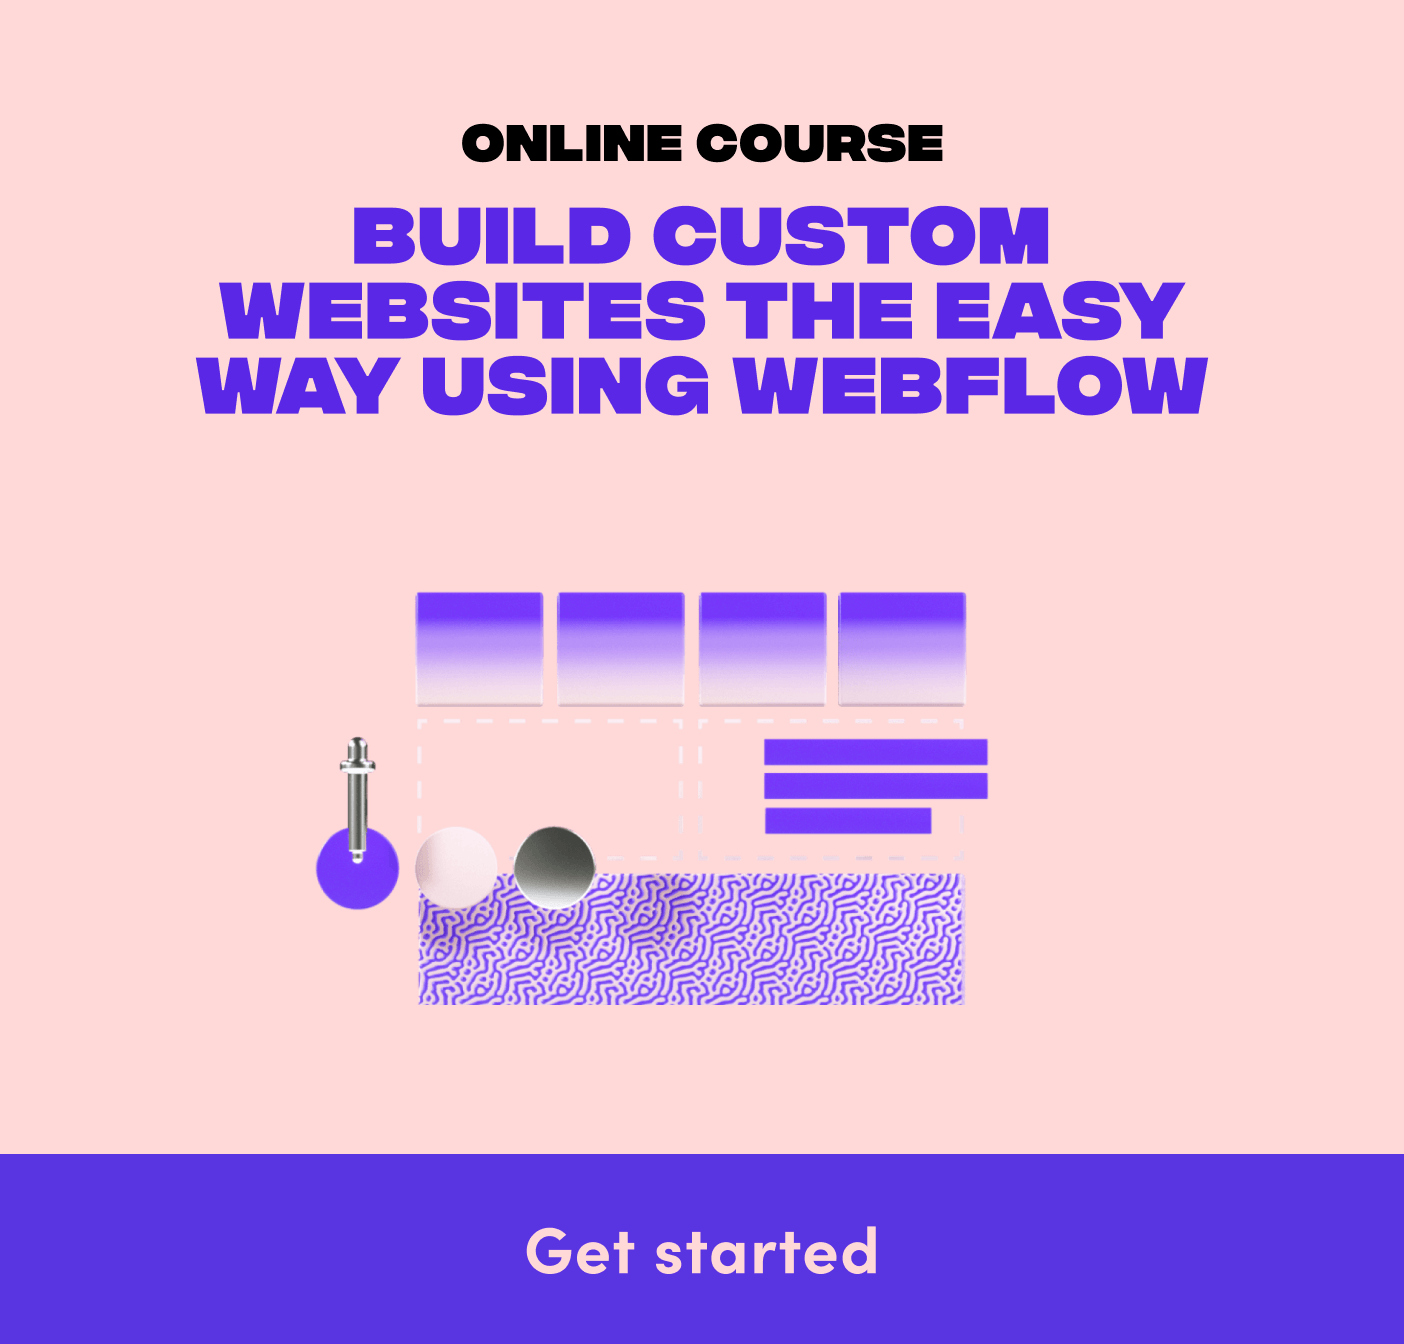 """A graphic promoting a website building course called """"The Webflow Masterclass"""""""